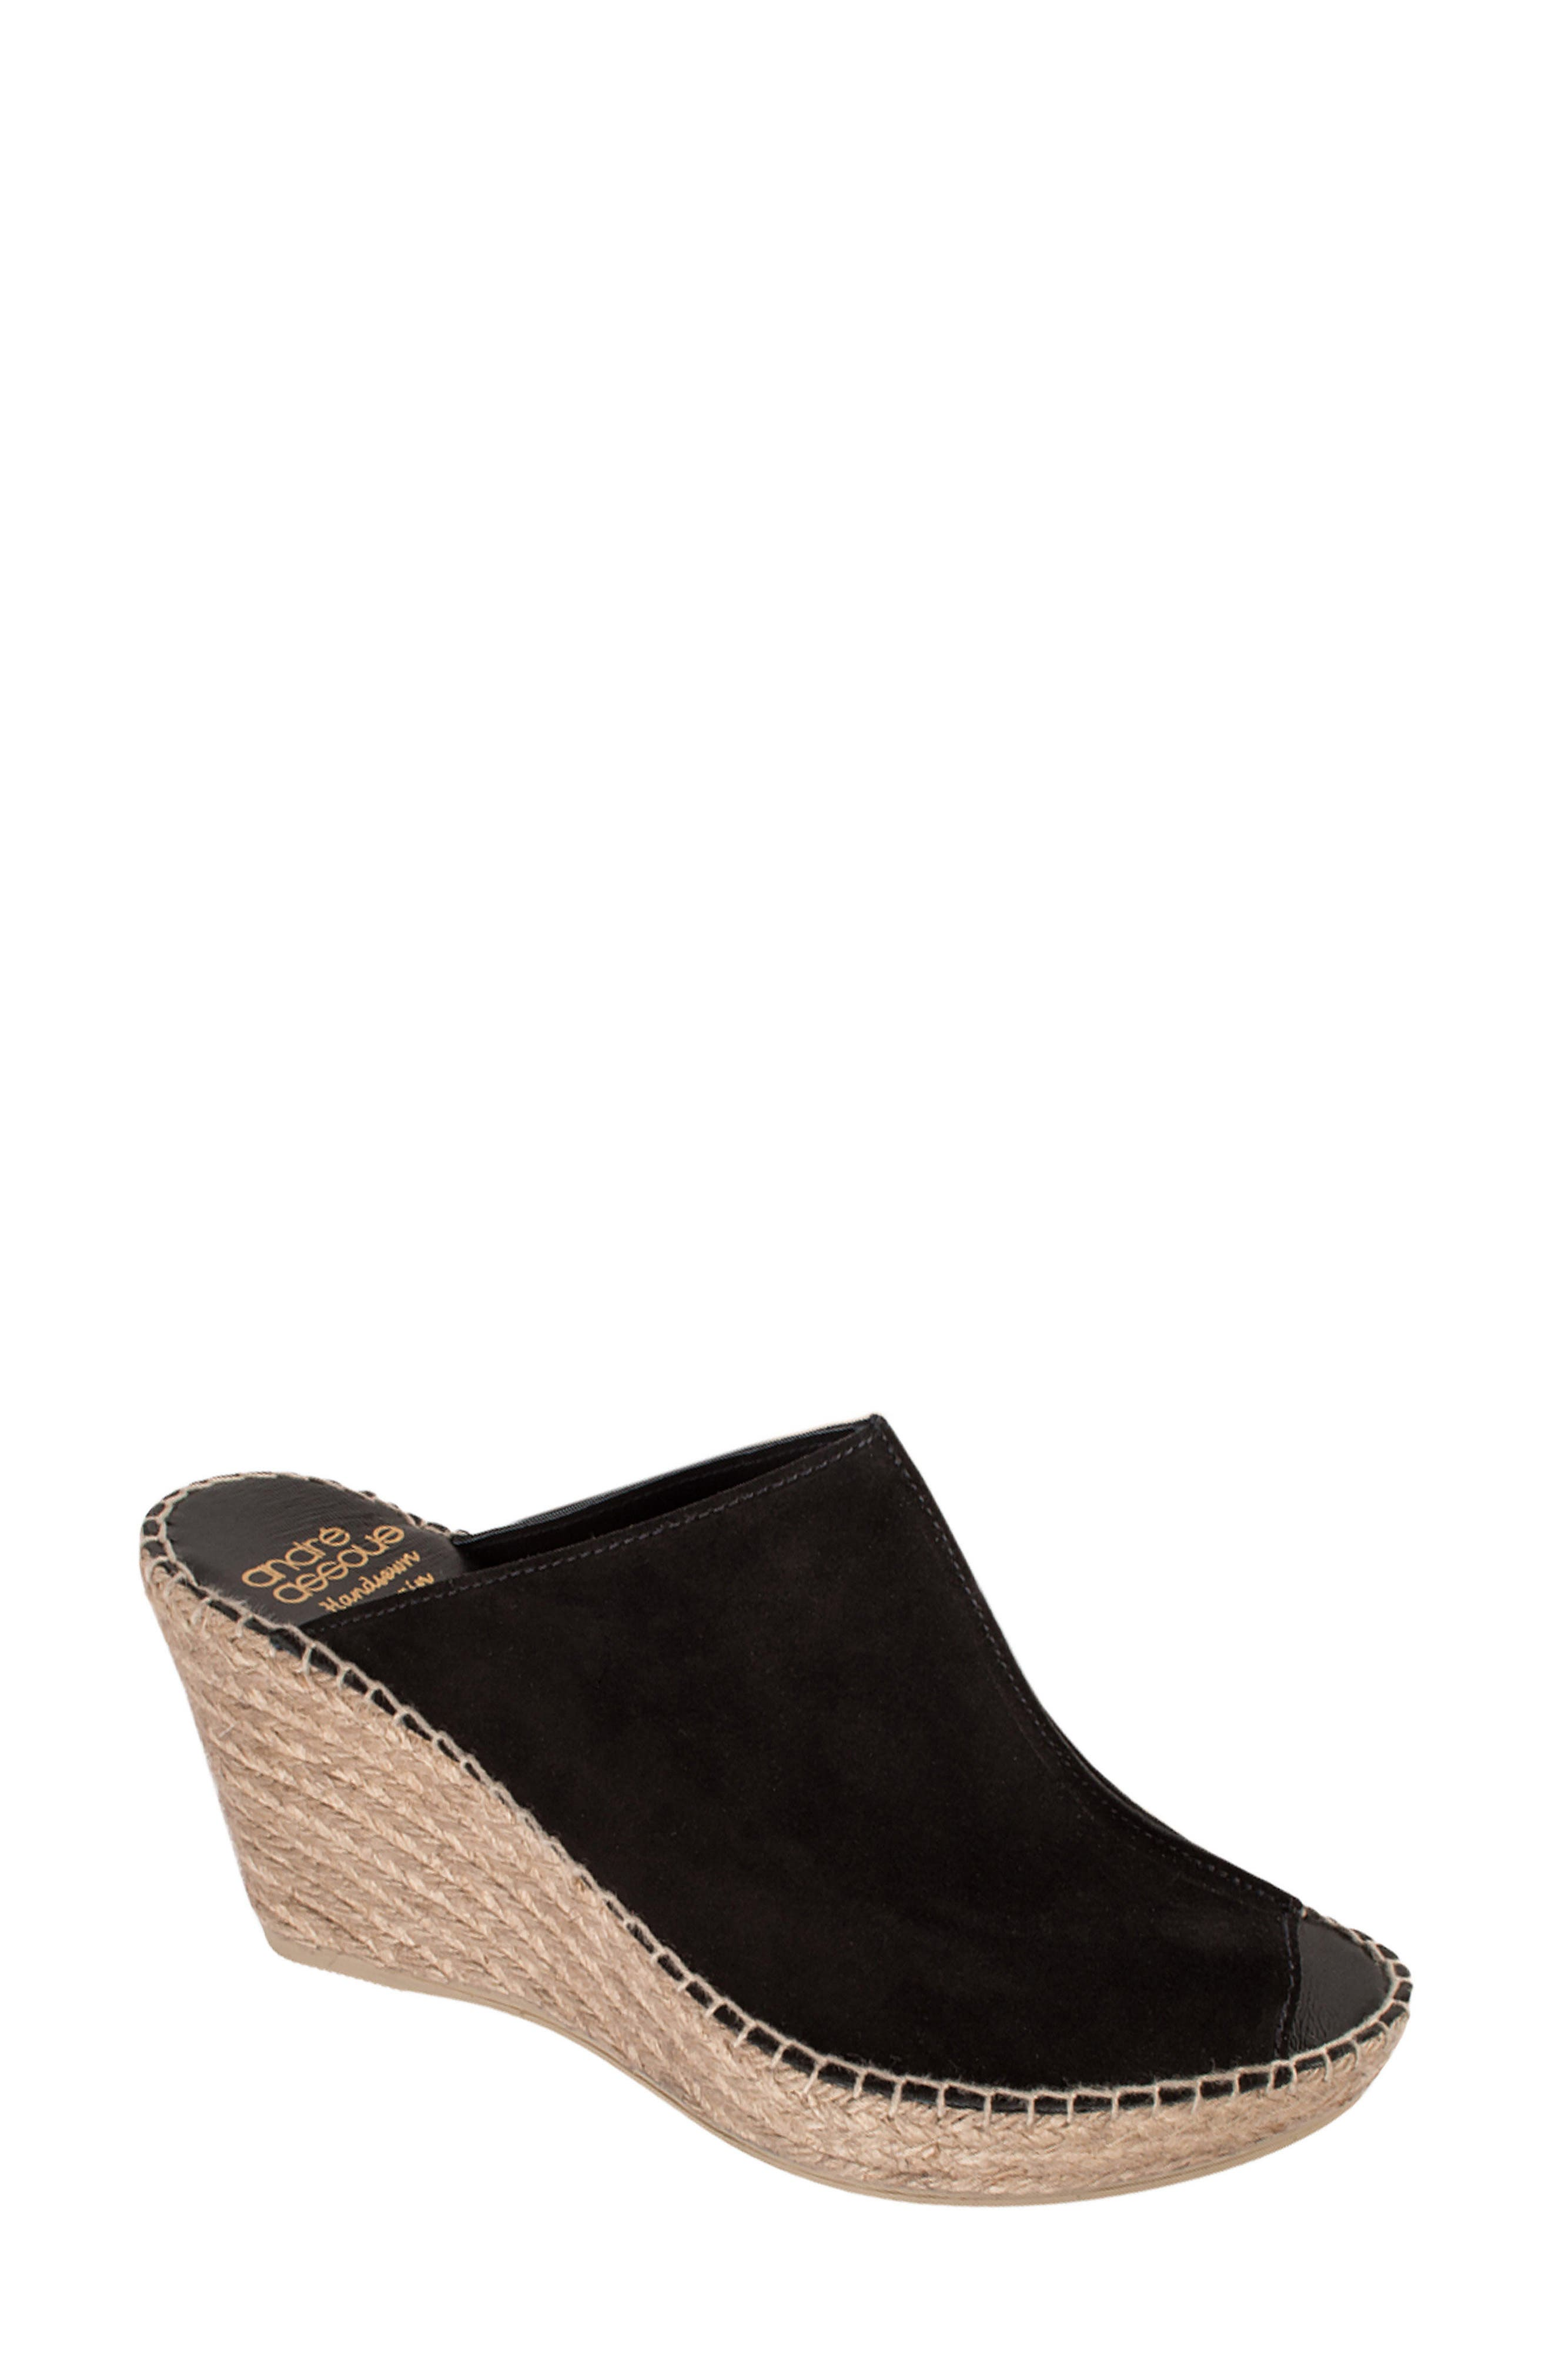 ANDRE ASSOUS Women'S Cici Leather Espadrille Wedge Slide Sandals in Black Suede